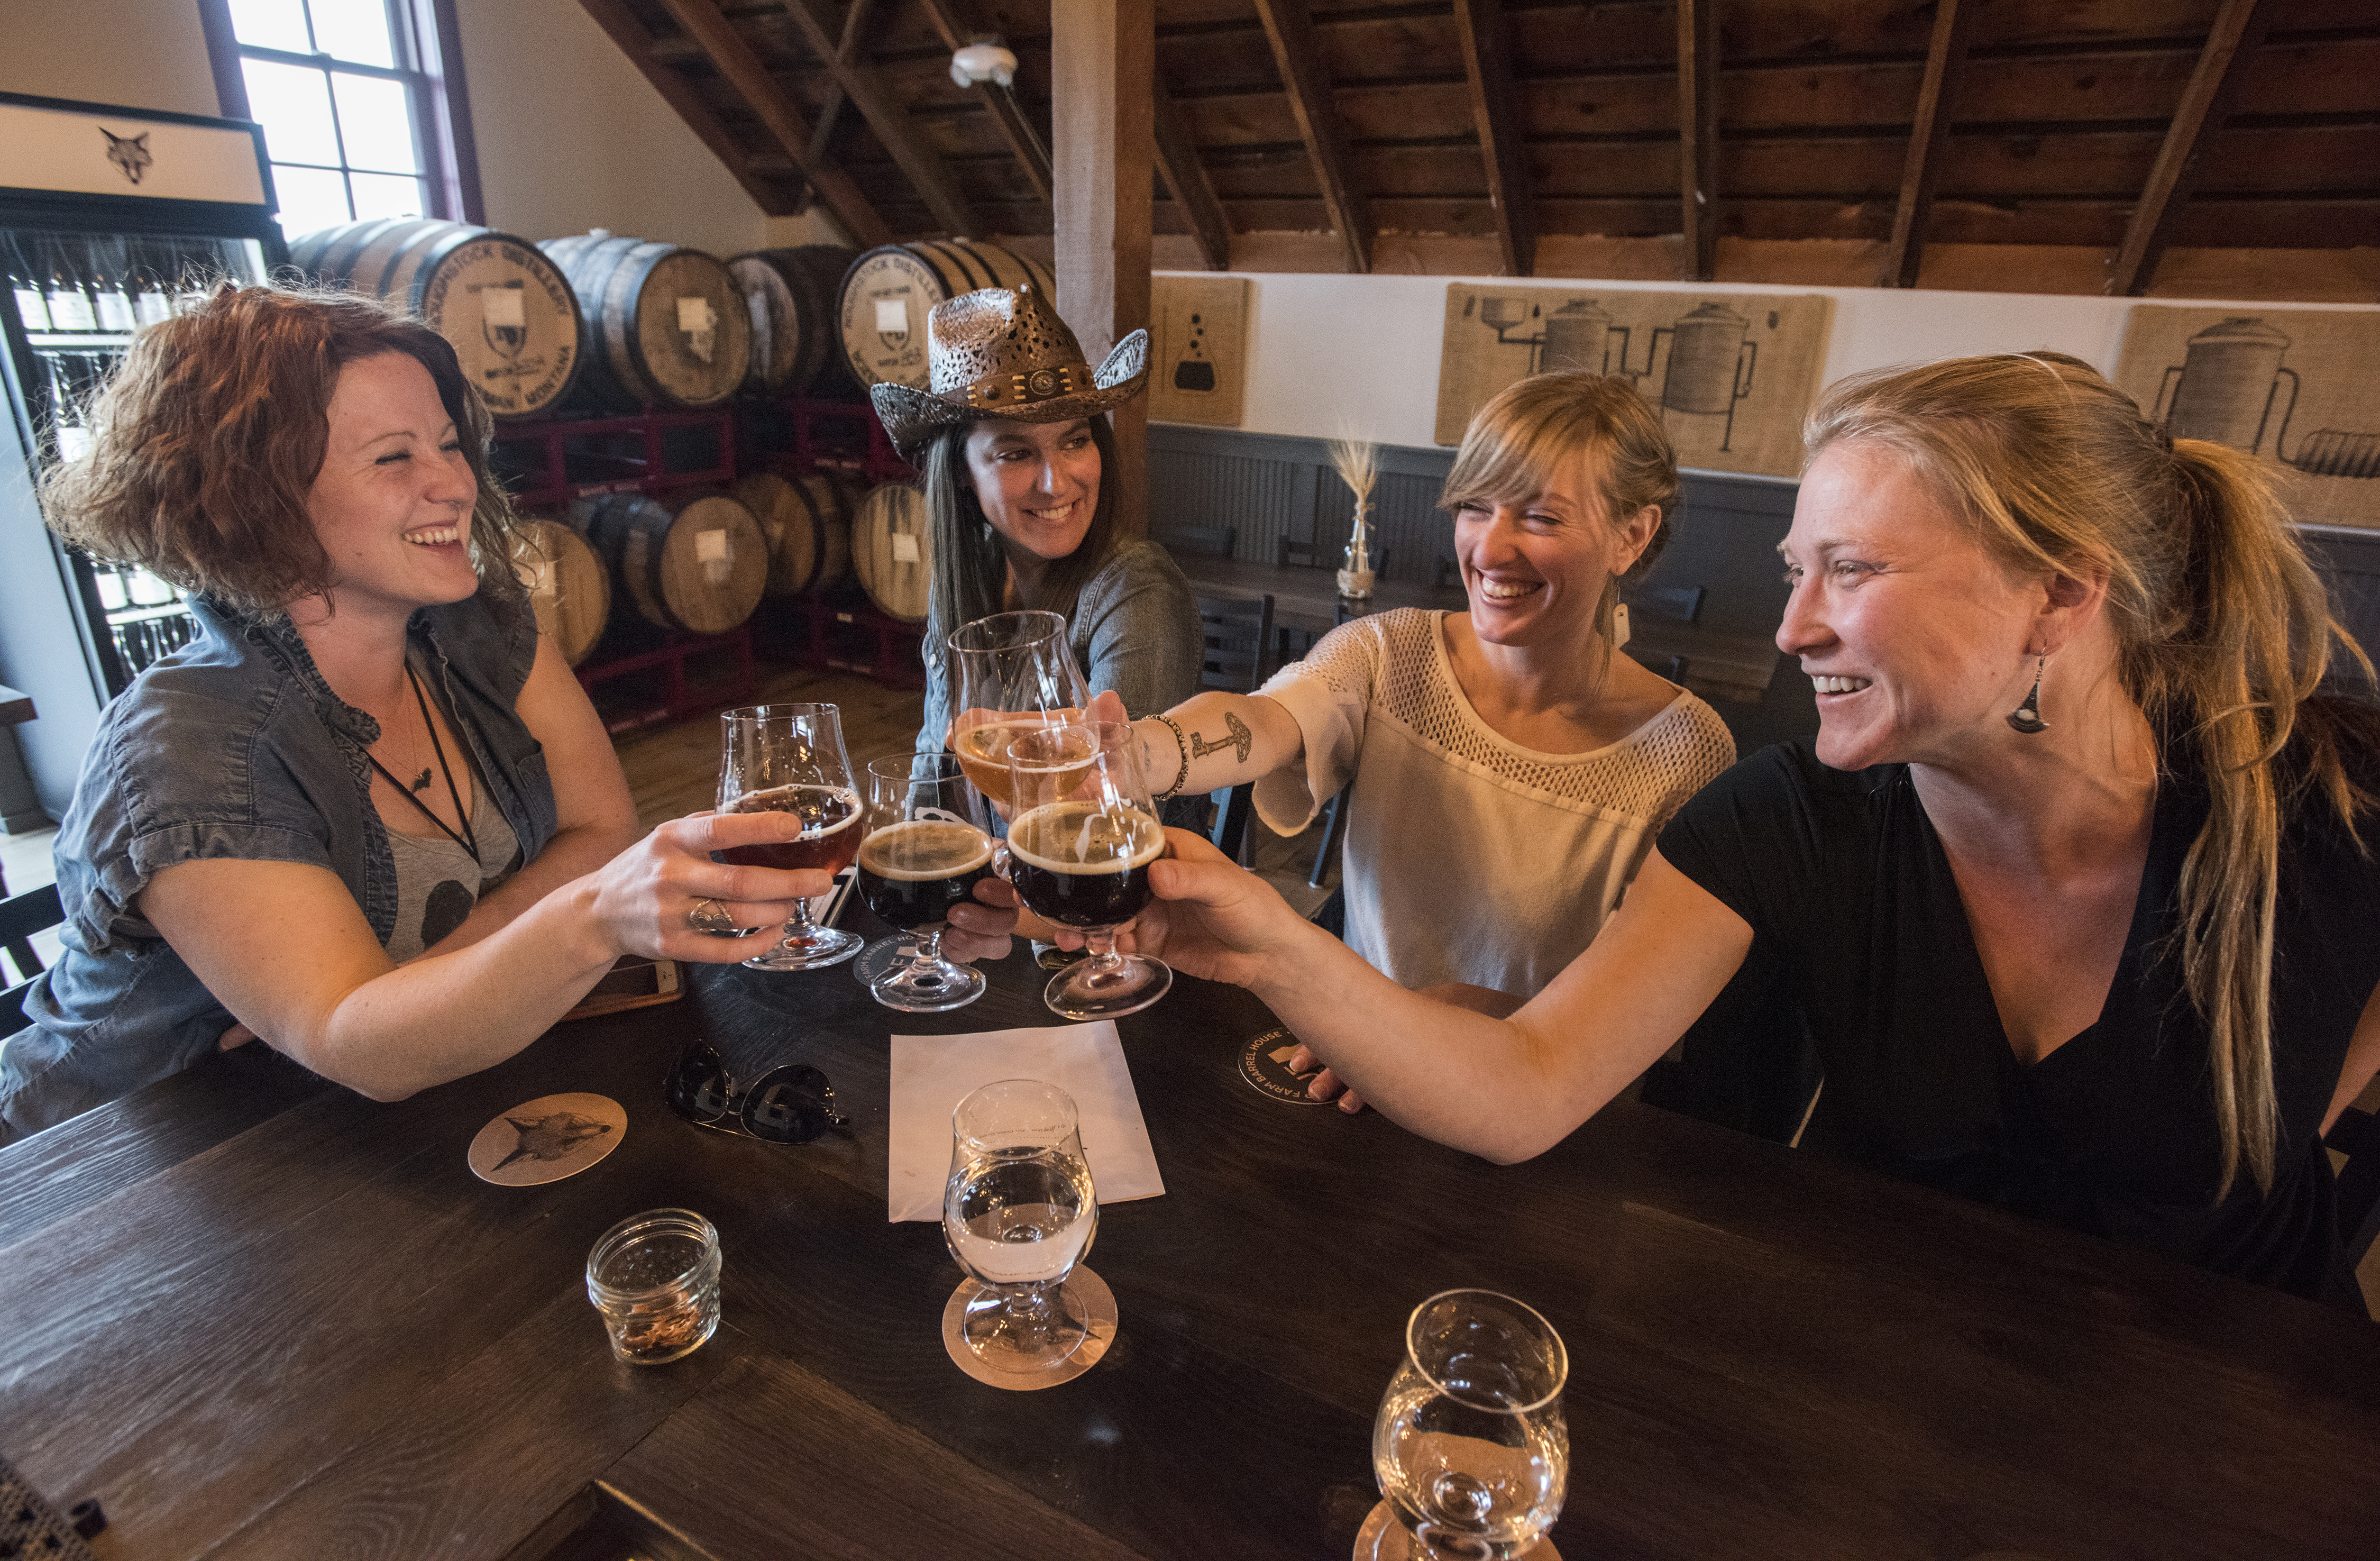 Four women clink their beer glasses in a jolly toast.